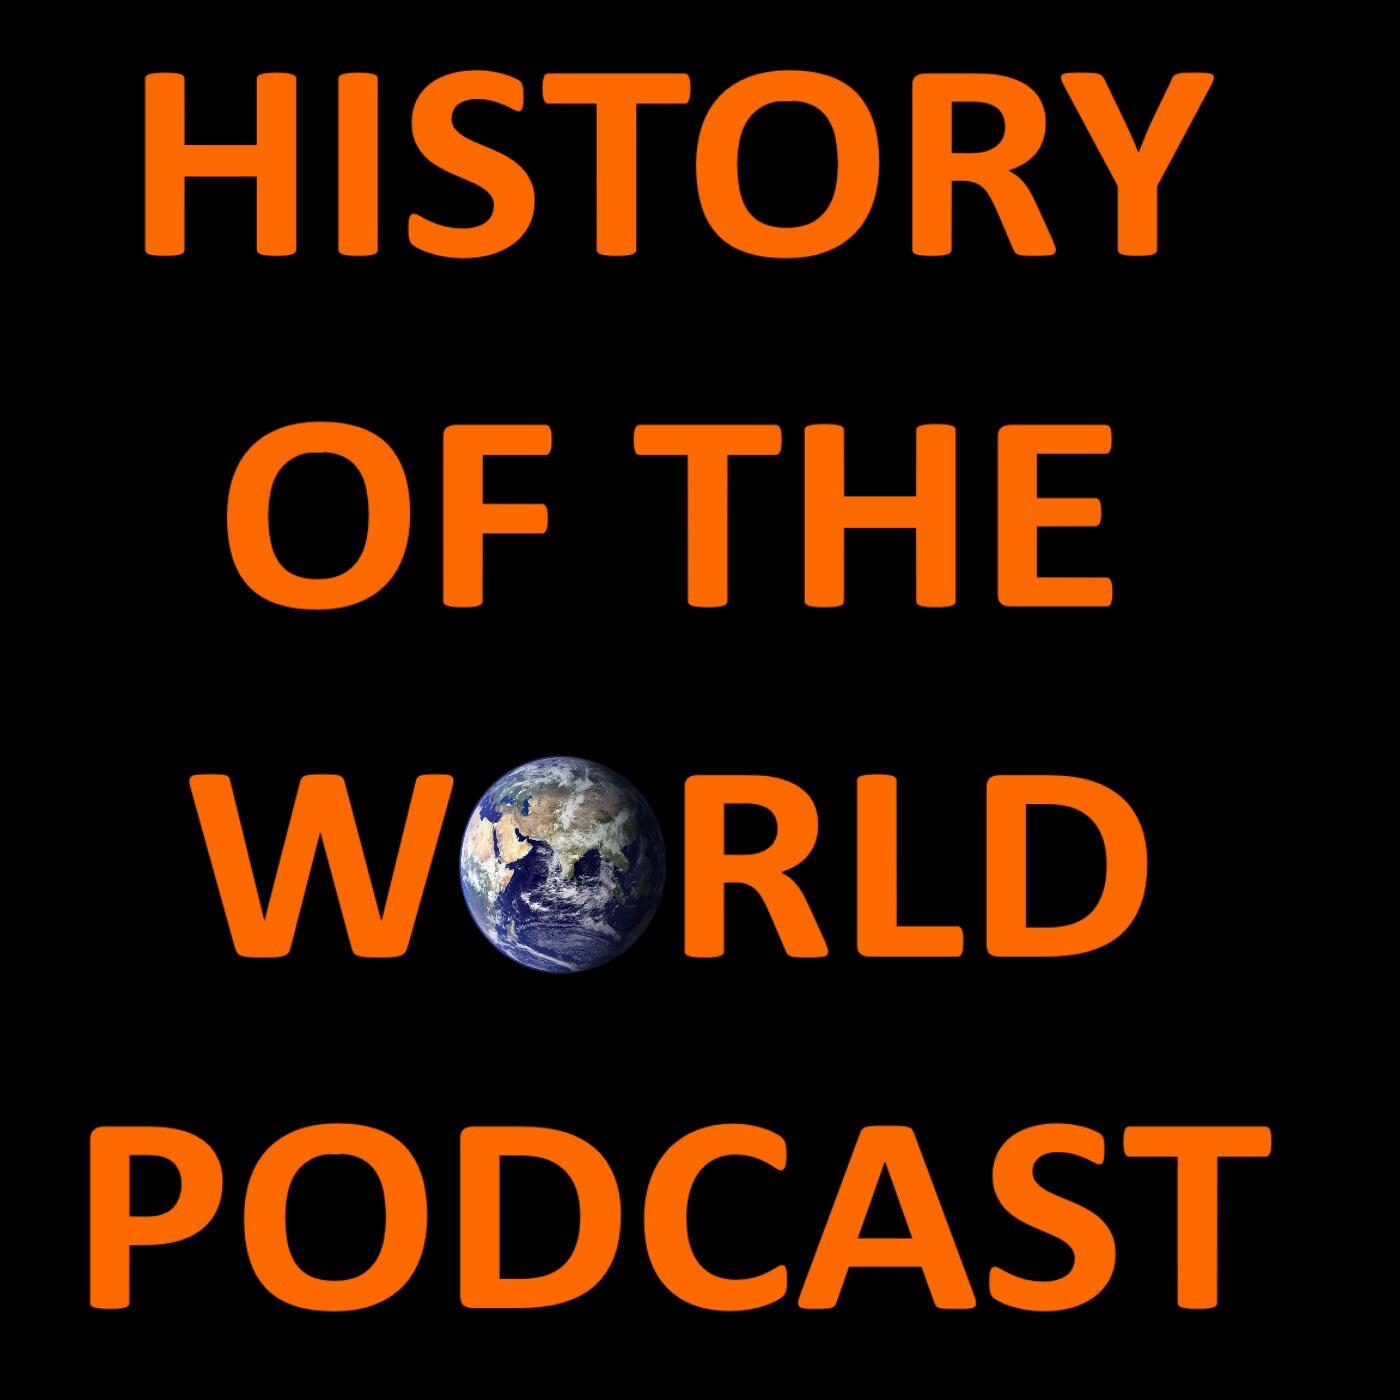 19: Vol 2 Ep 19 - Ancient Egypt: After the New Kingdom